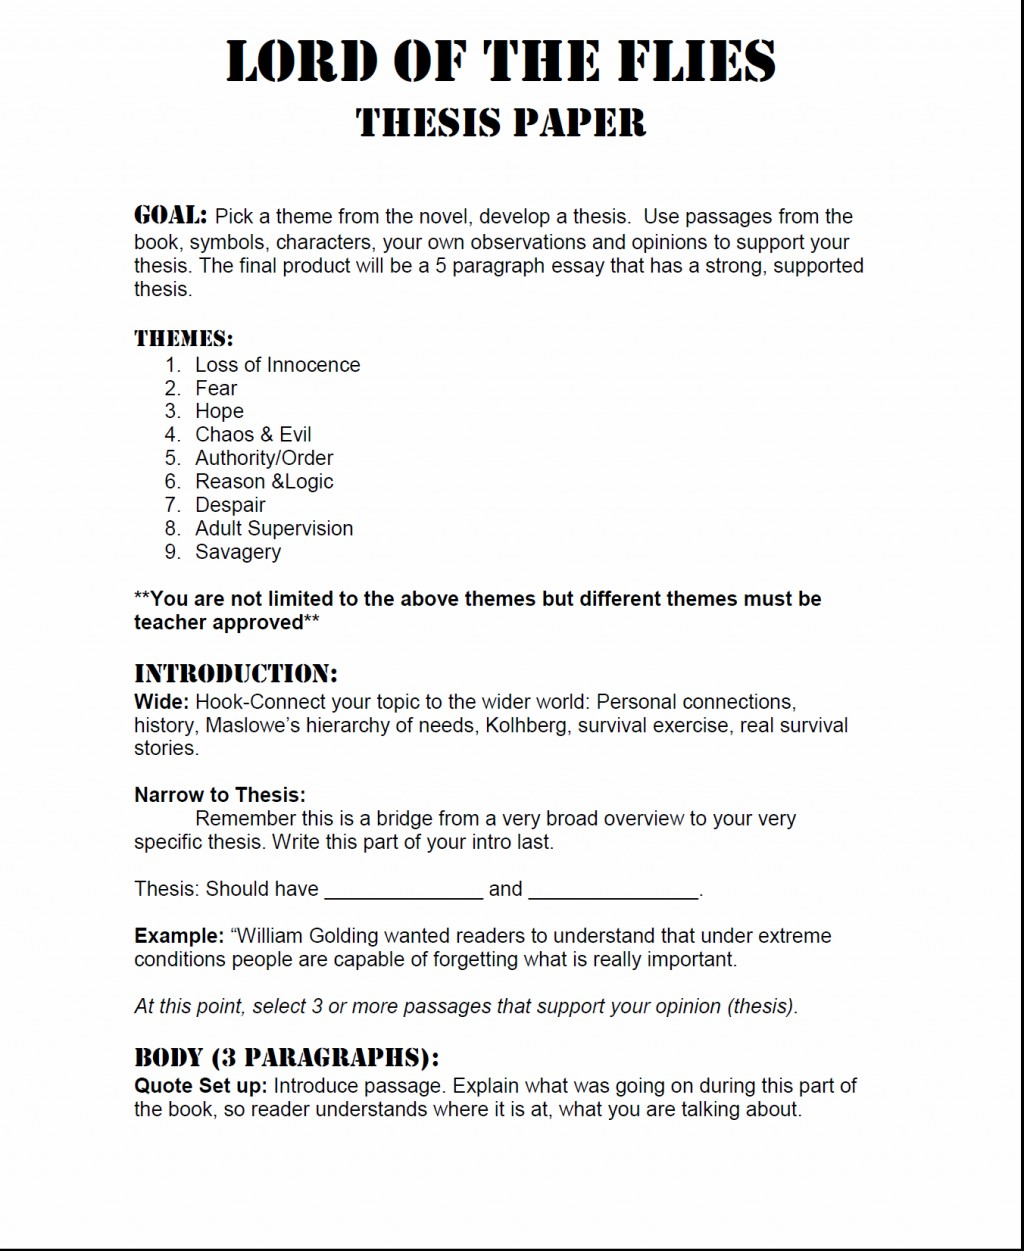 002 Essay Example Lord Of The Flies Thesis Essays On L Unusual Symbolism Beast Introduction Prompt Large